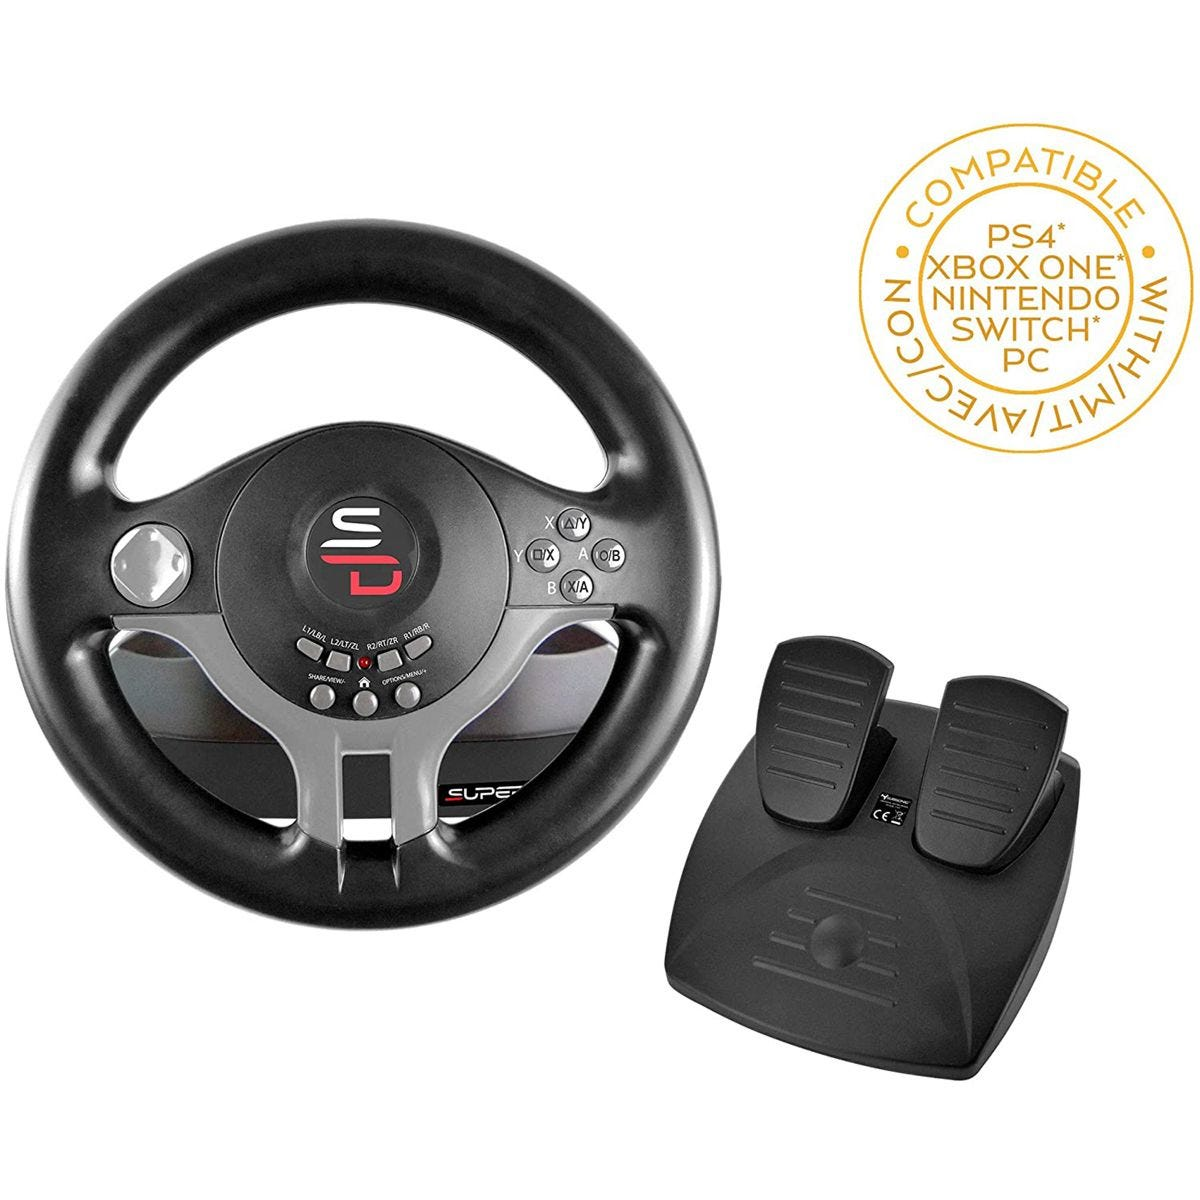 Superdrive SV200 Driving Wheel for Switch, PS4, Xbox One & PC - Black